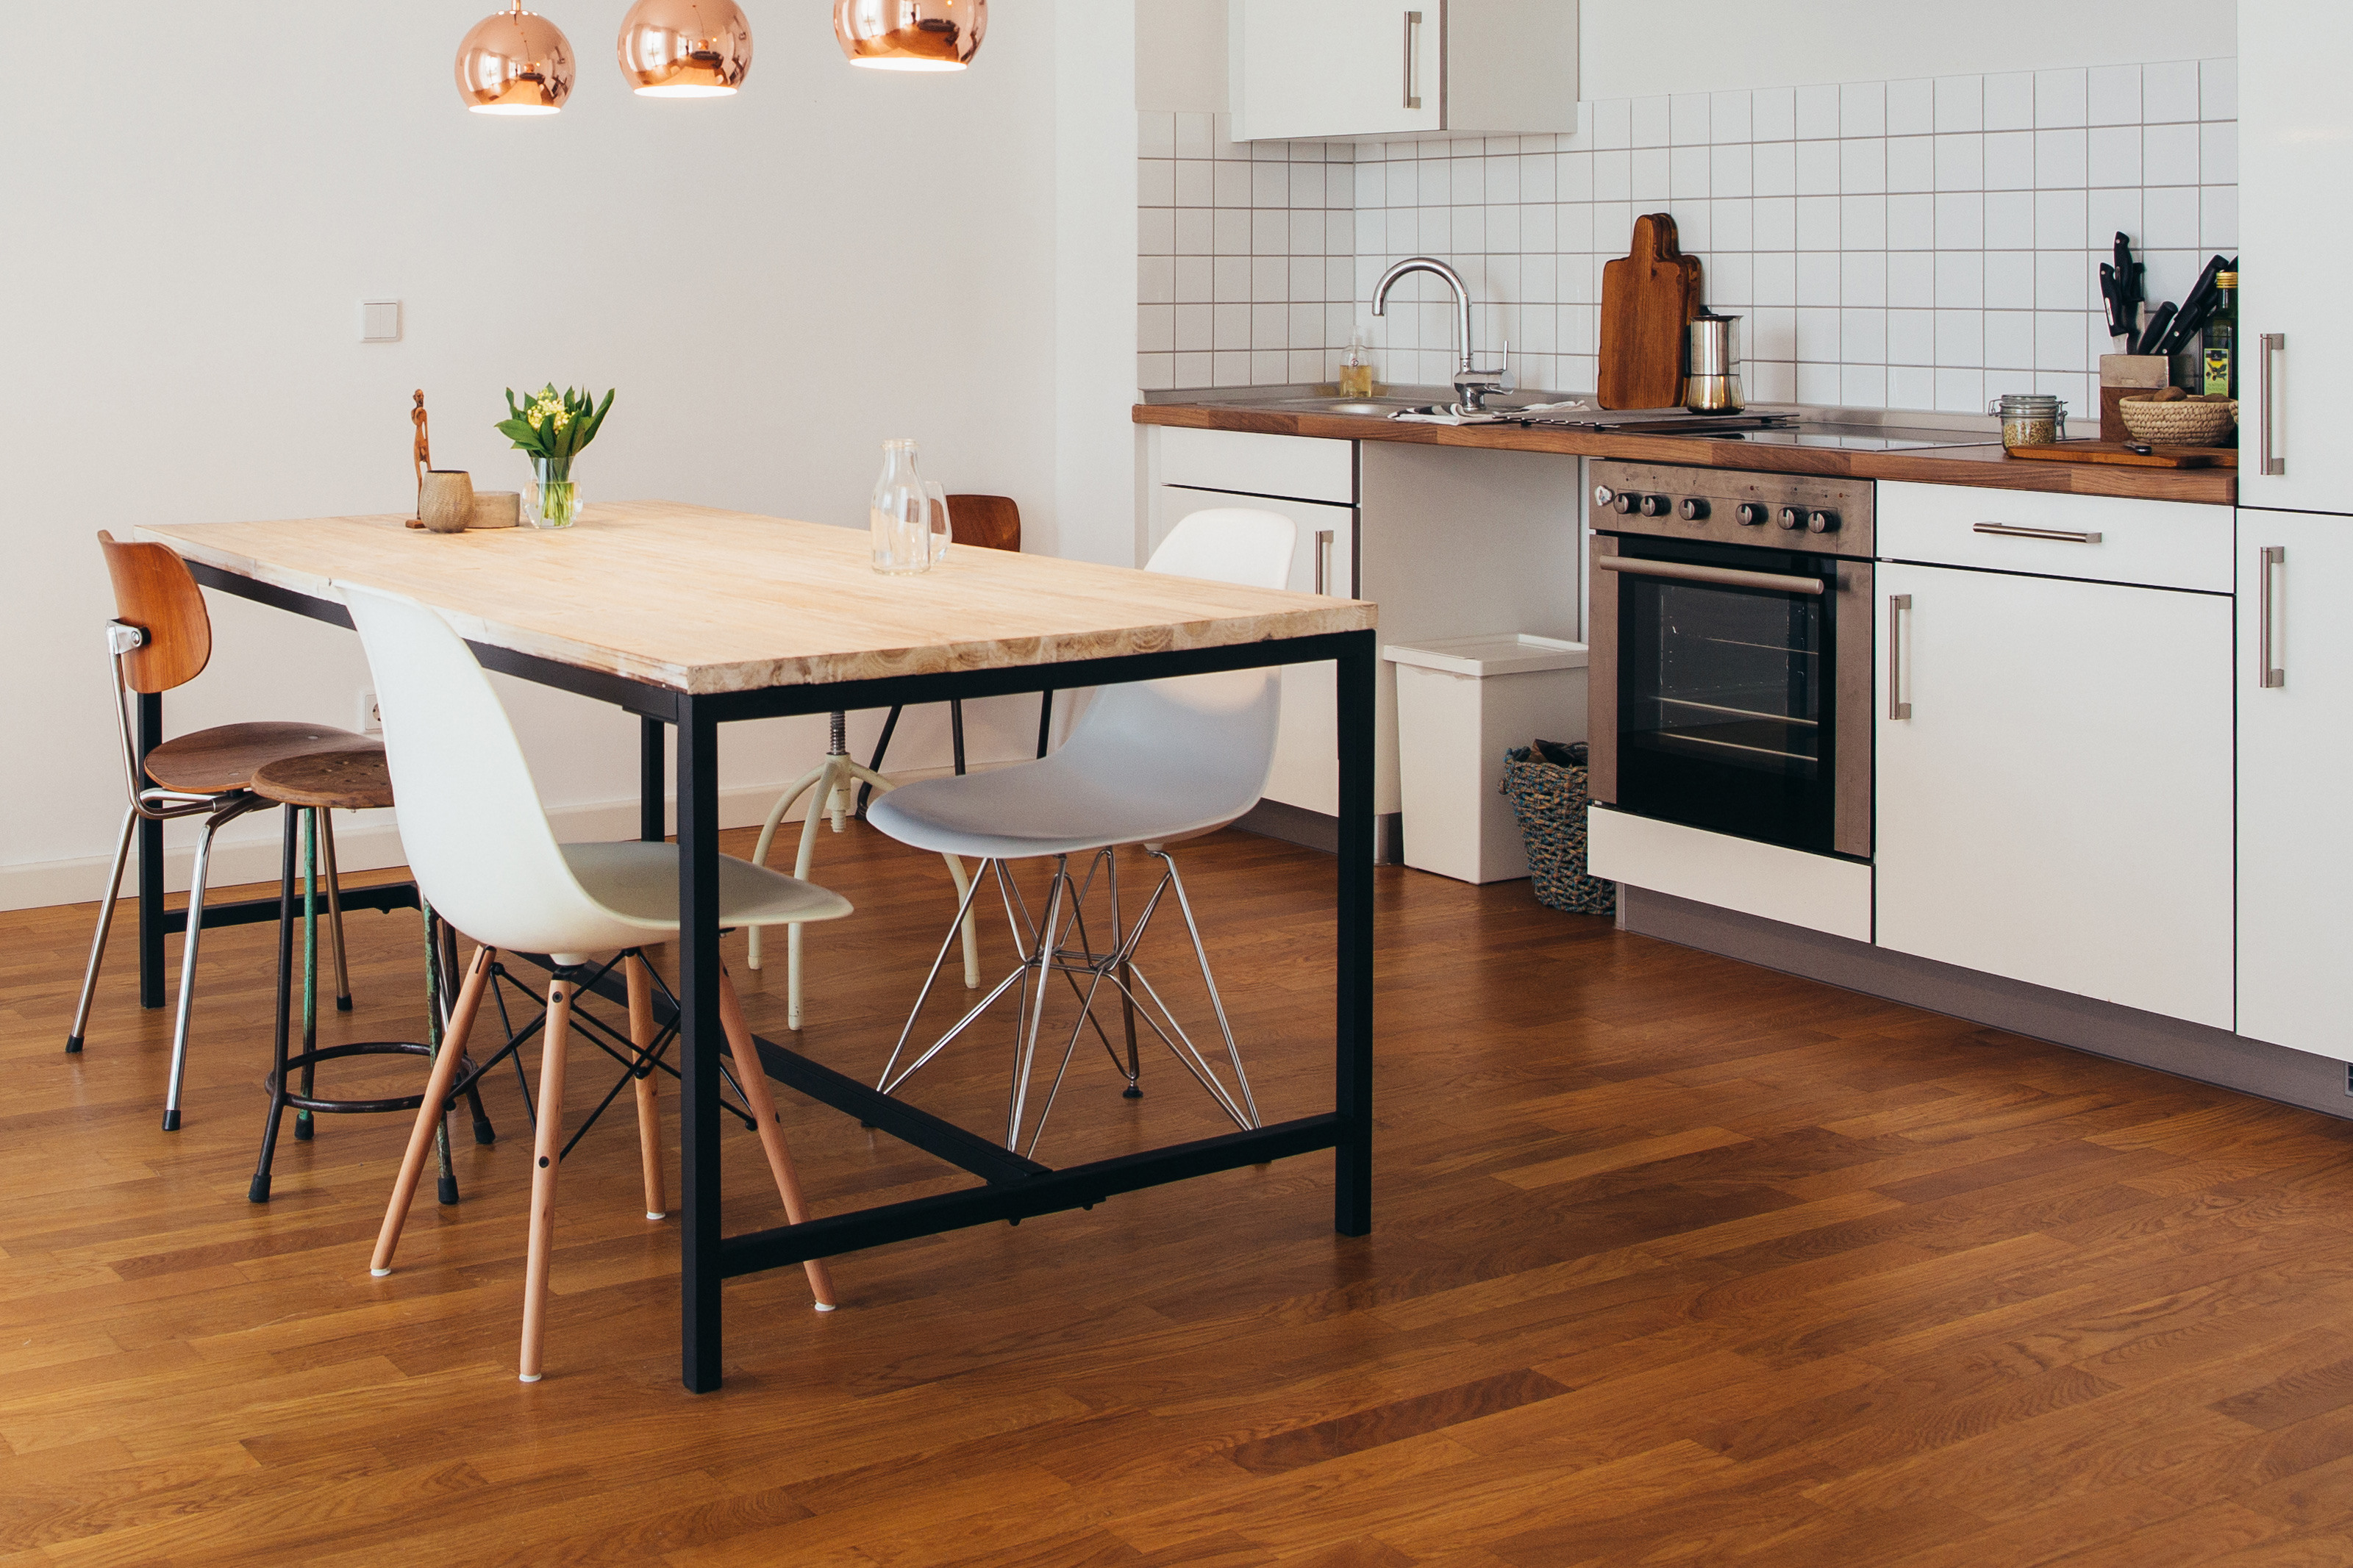 Modern kitchen with wood floors